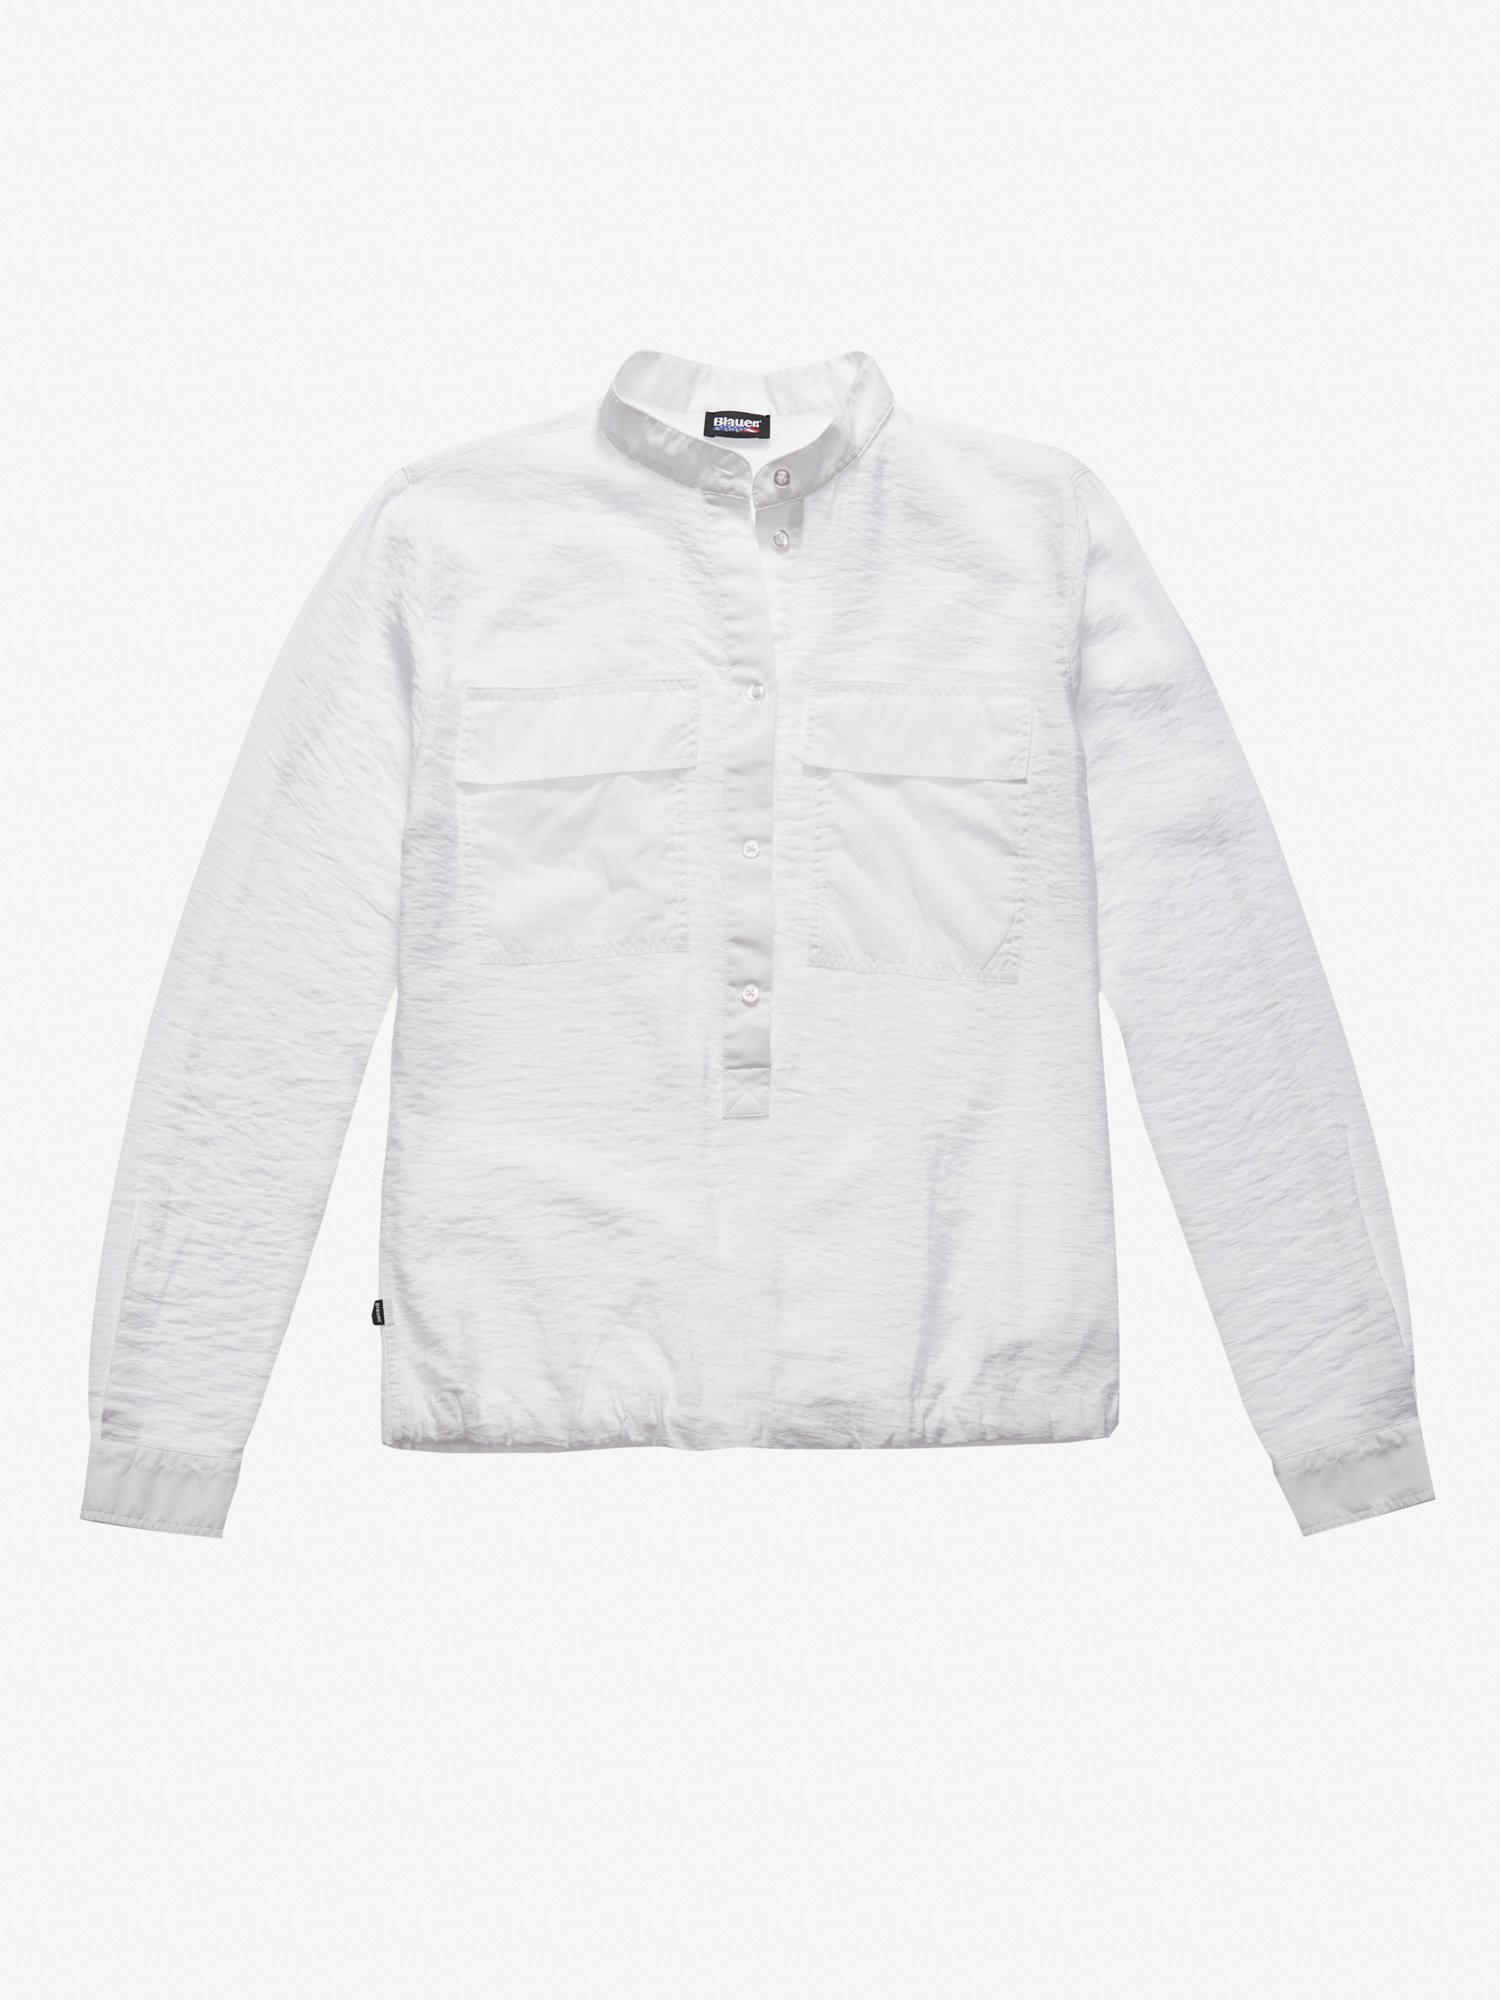 SHIRT WITH TWO POCKETS - Blauer